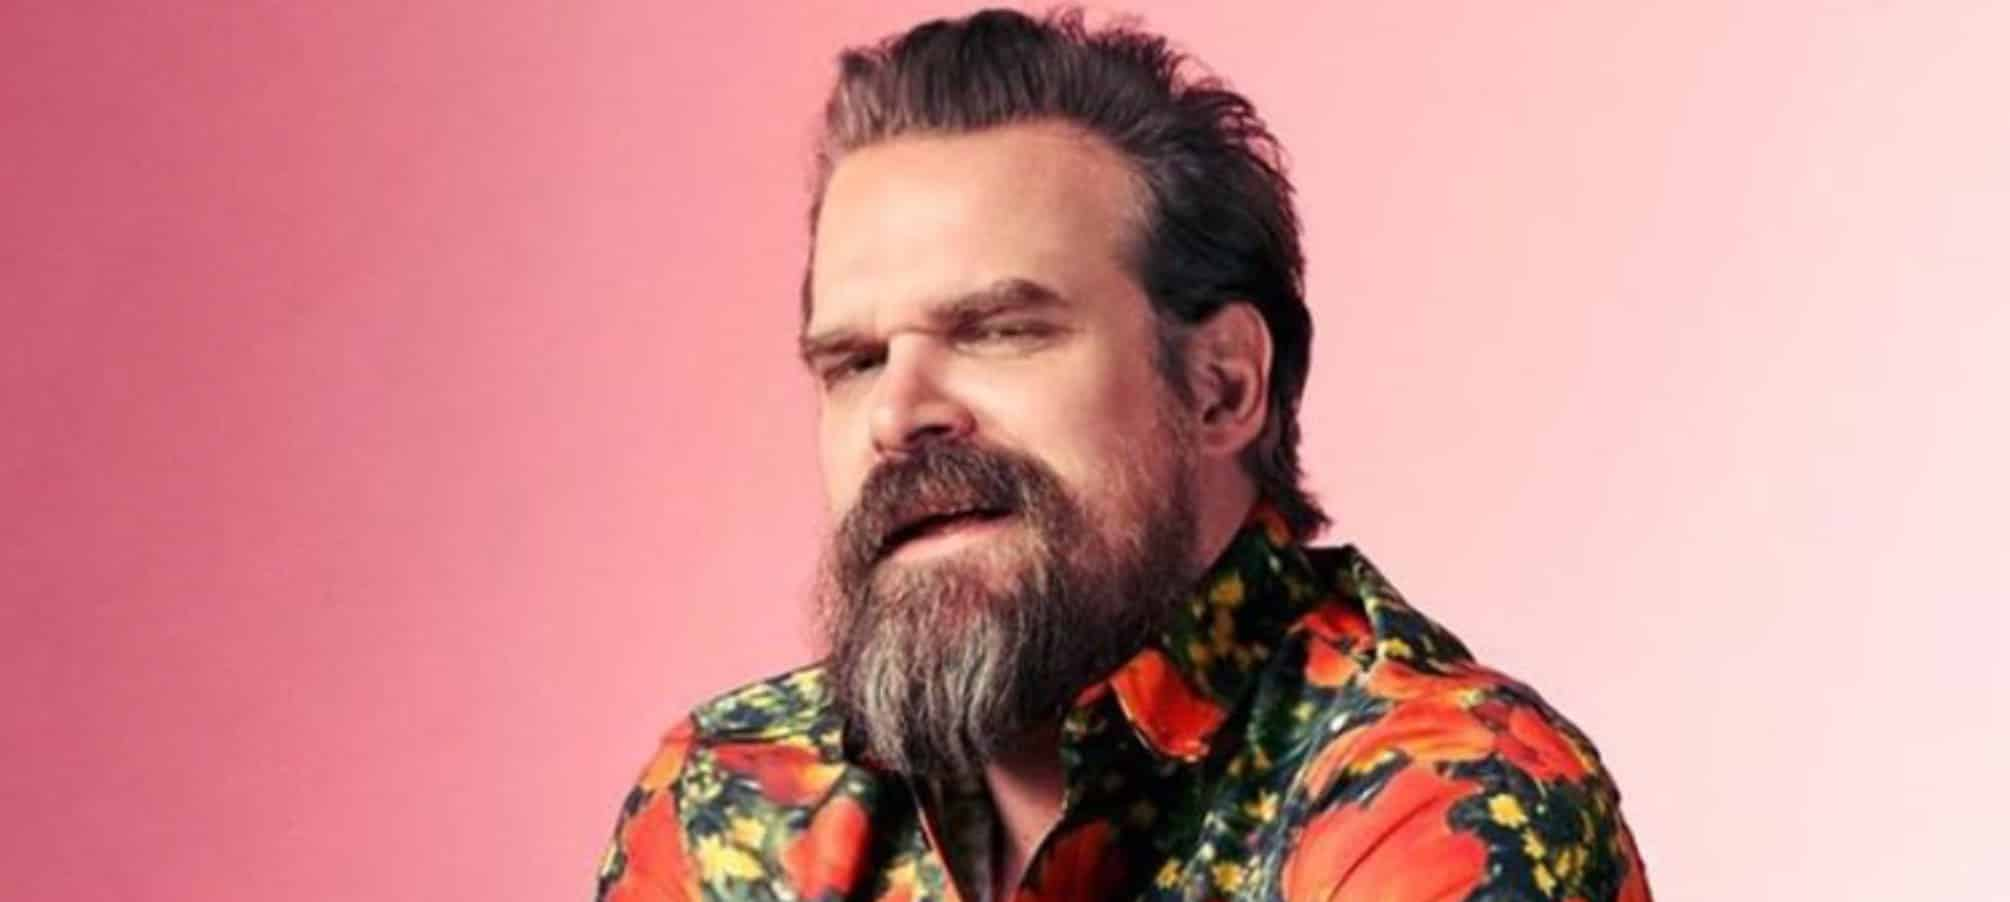 Stranger Things: David Harbour (Jim Hopper) et Lily Allen sont très proches !